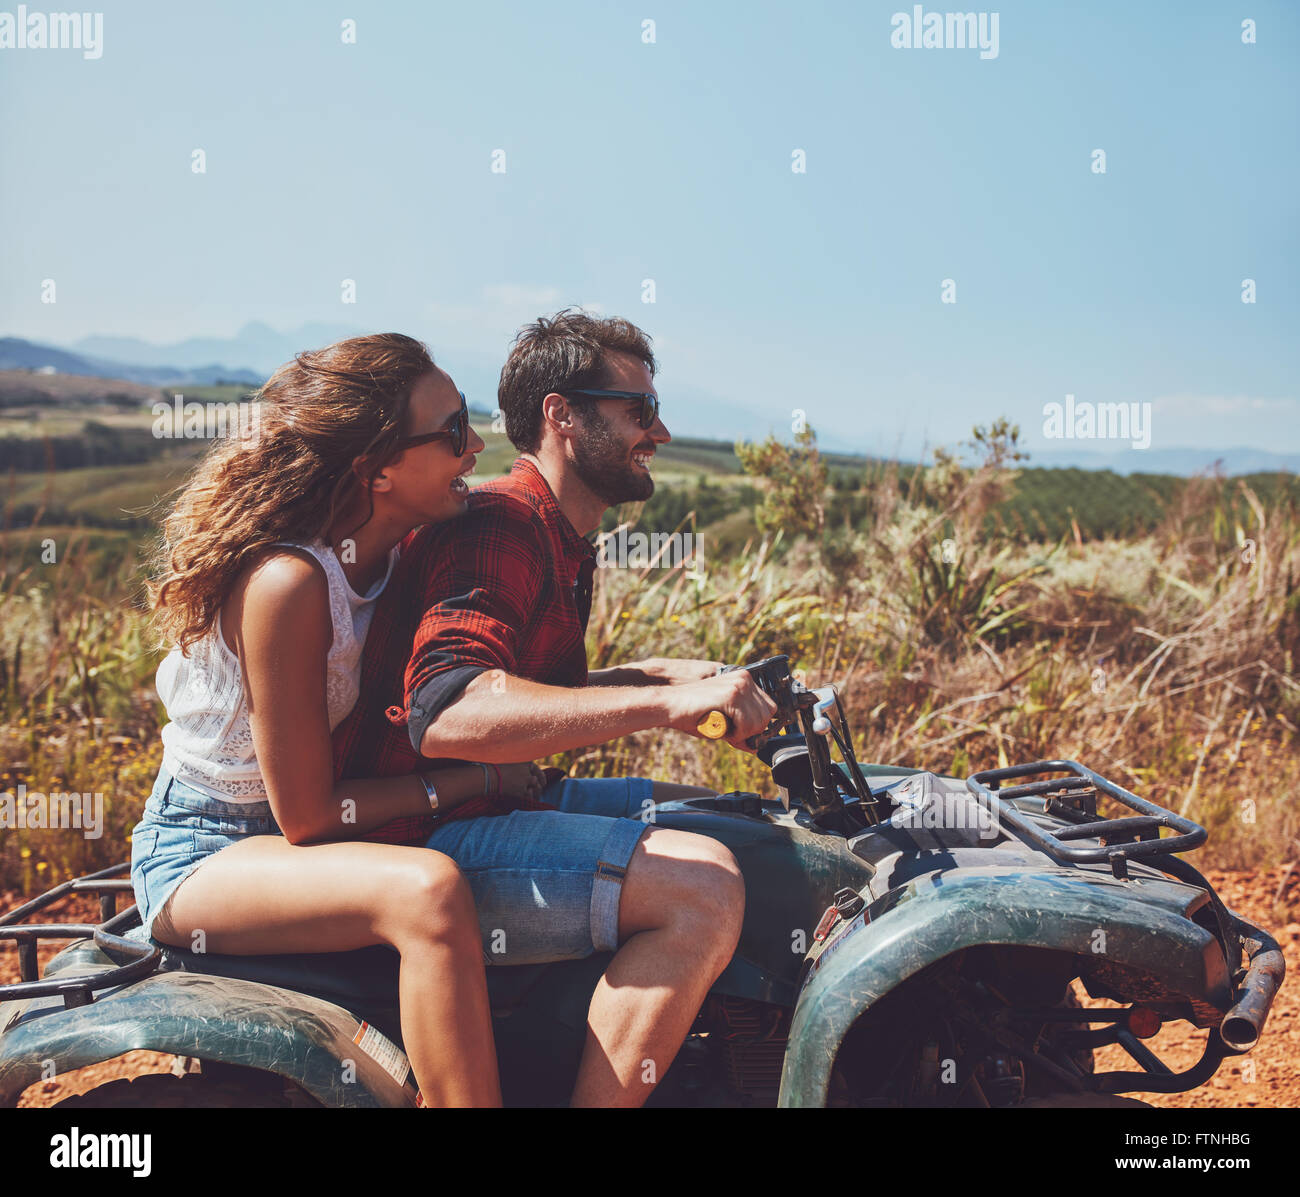 side-view-of-young-man-and-woman-riding-